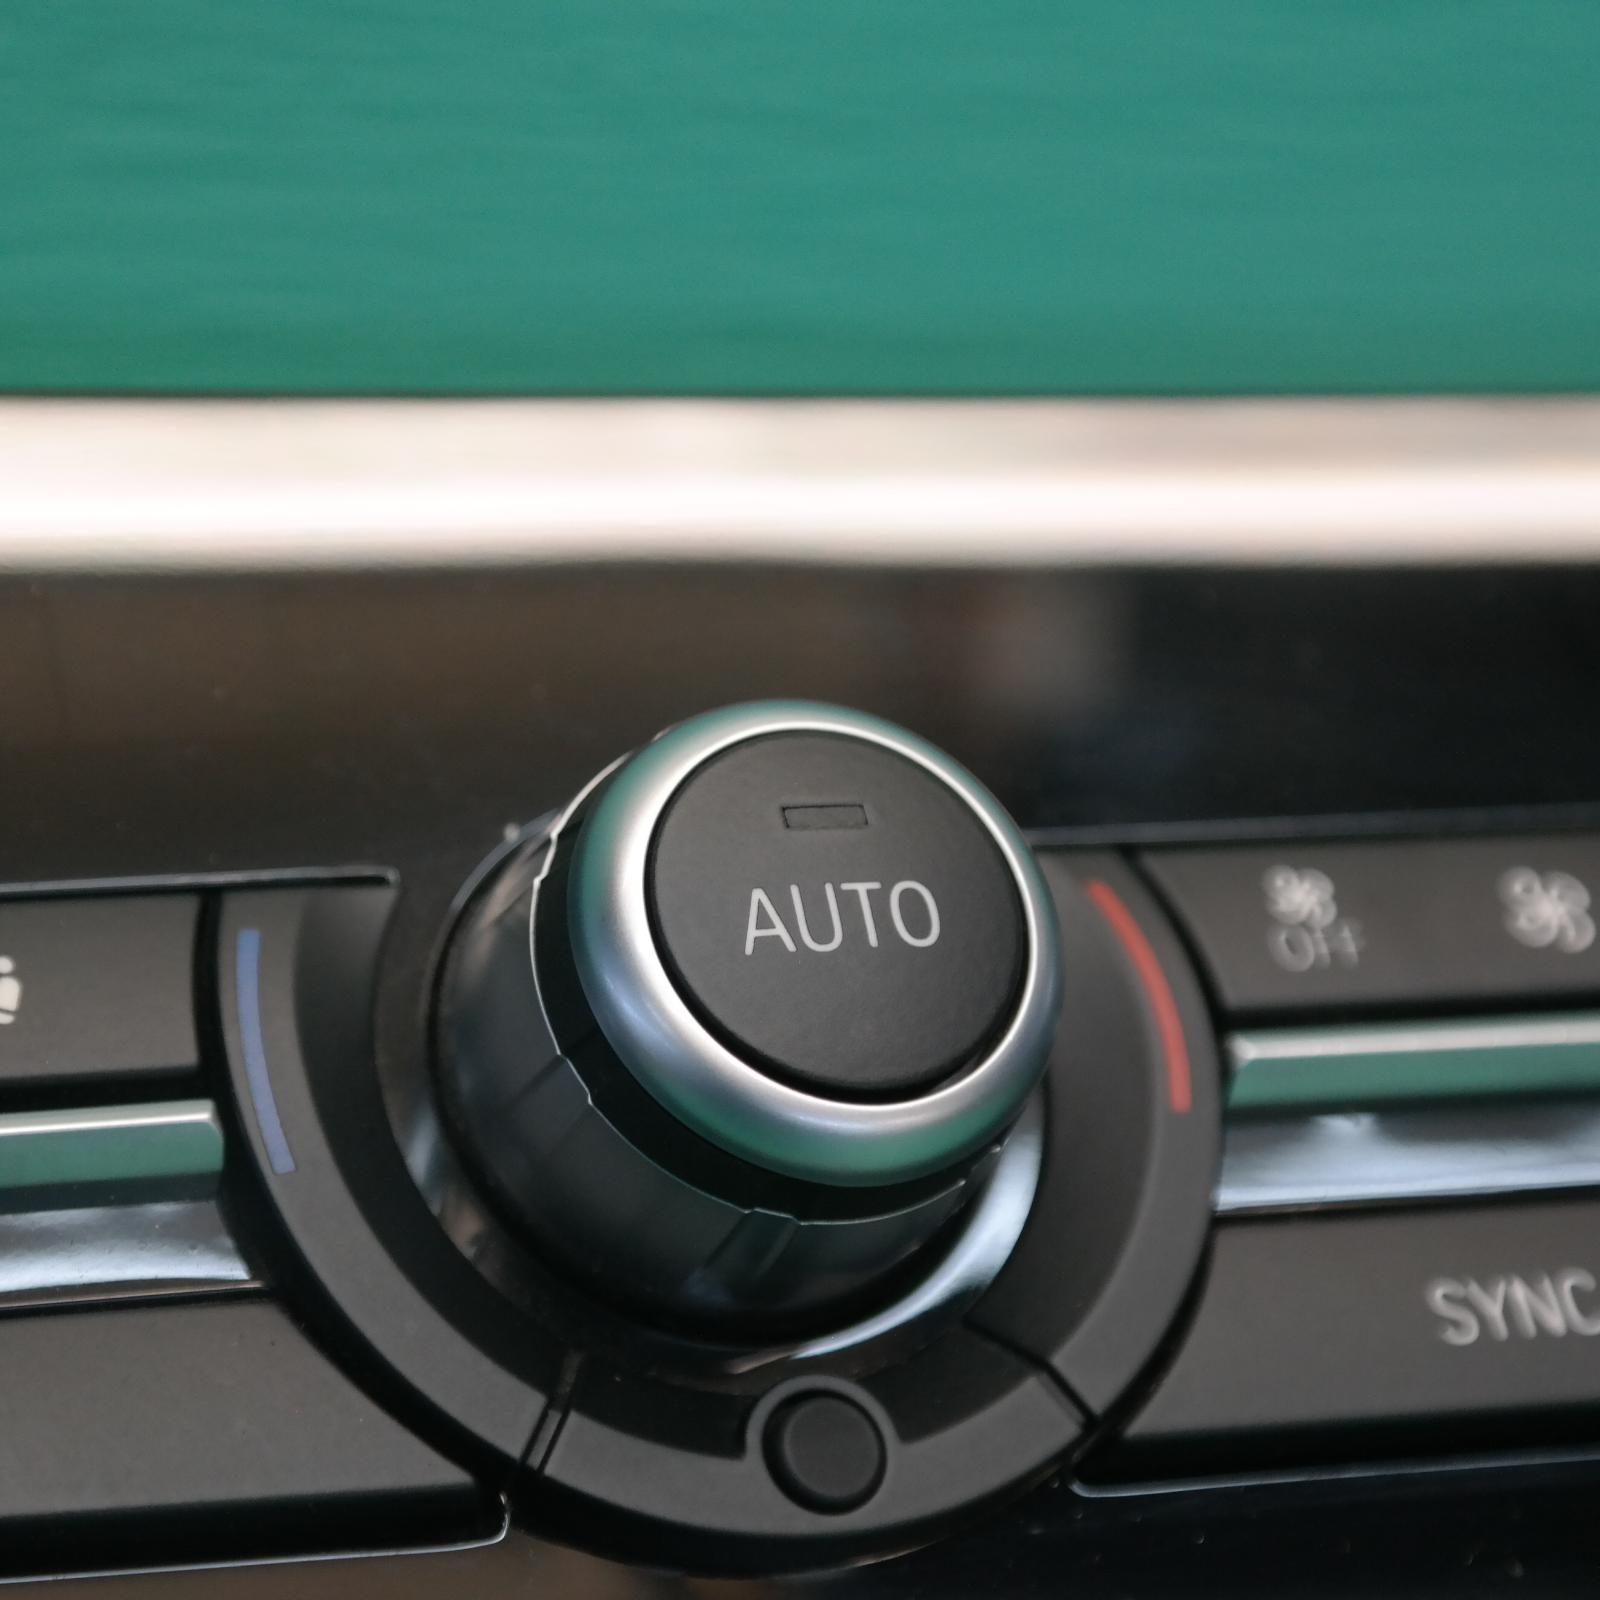 2014 Bmw X5 Heater/Ac Controls